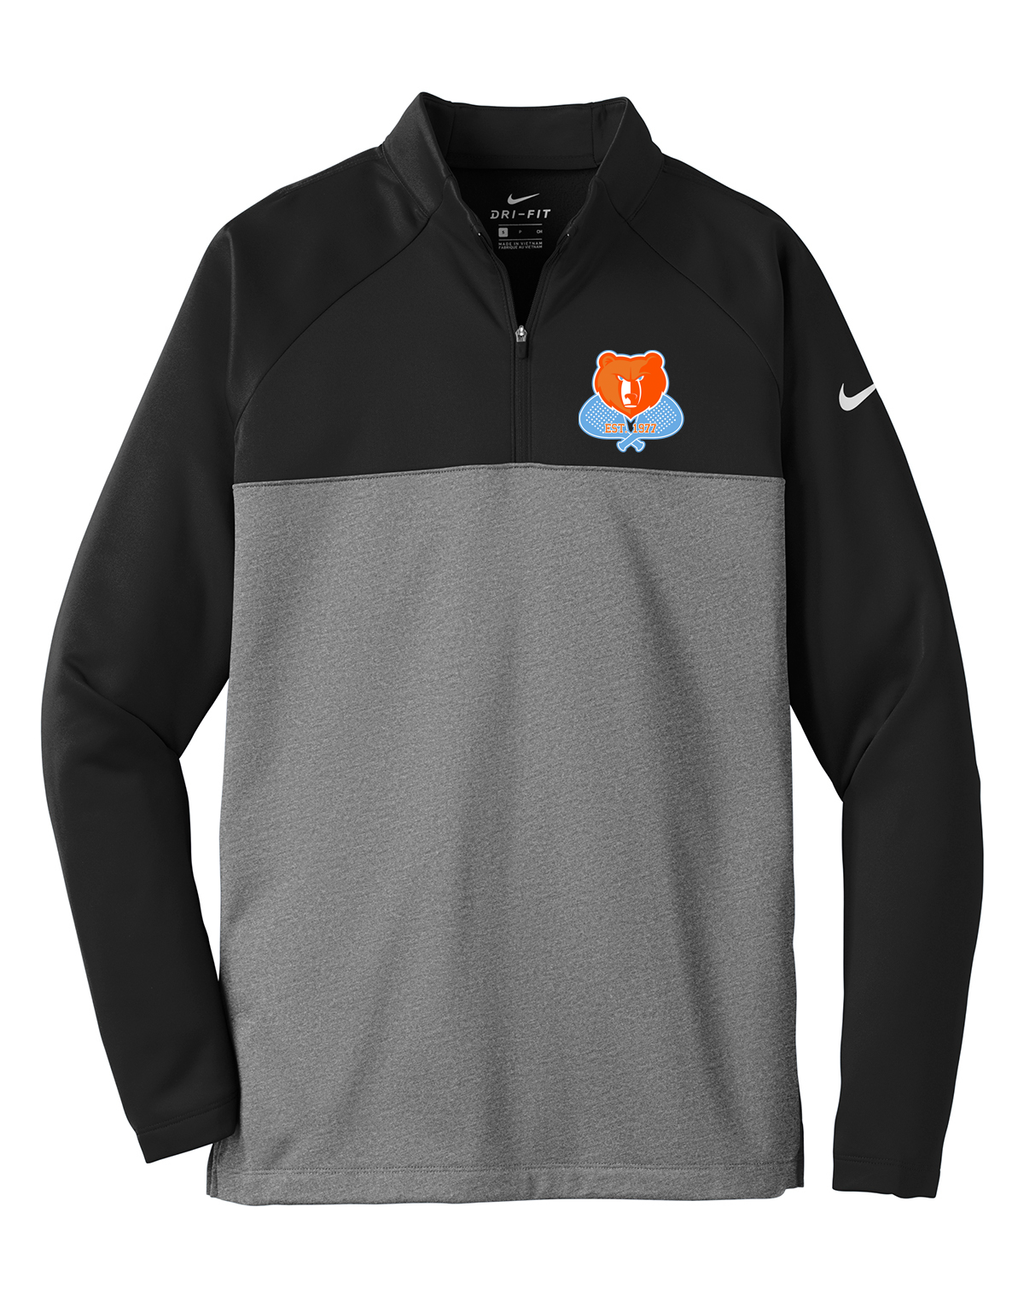 Briarcliff Men's Paddle Nike Therma-FIT Fleece